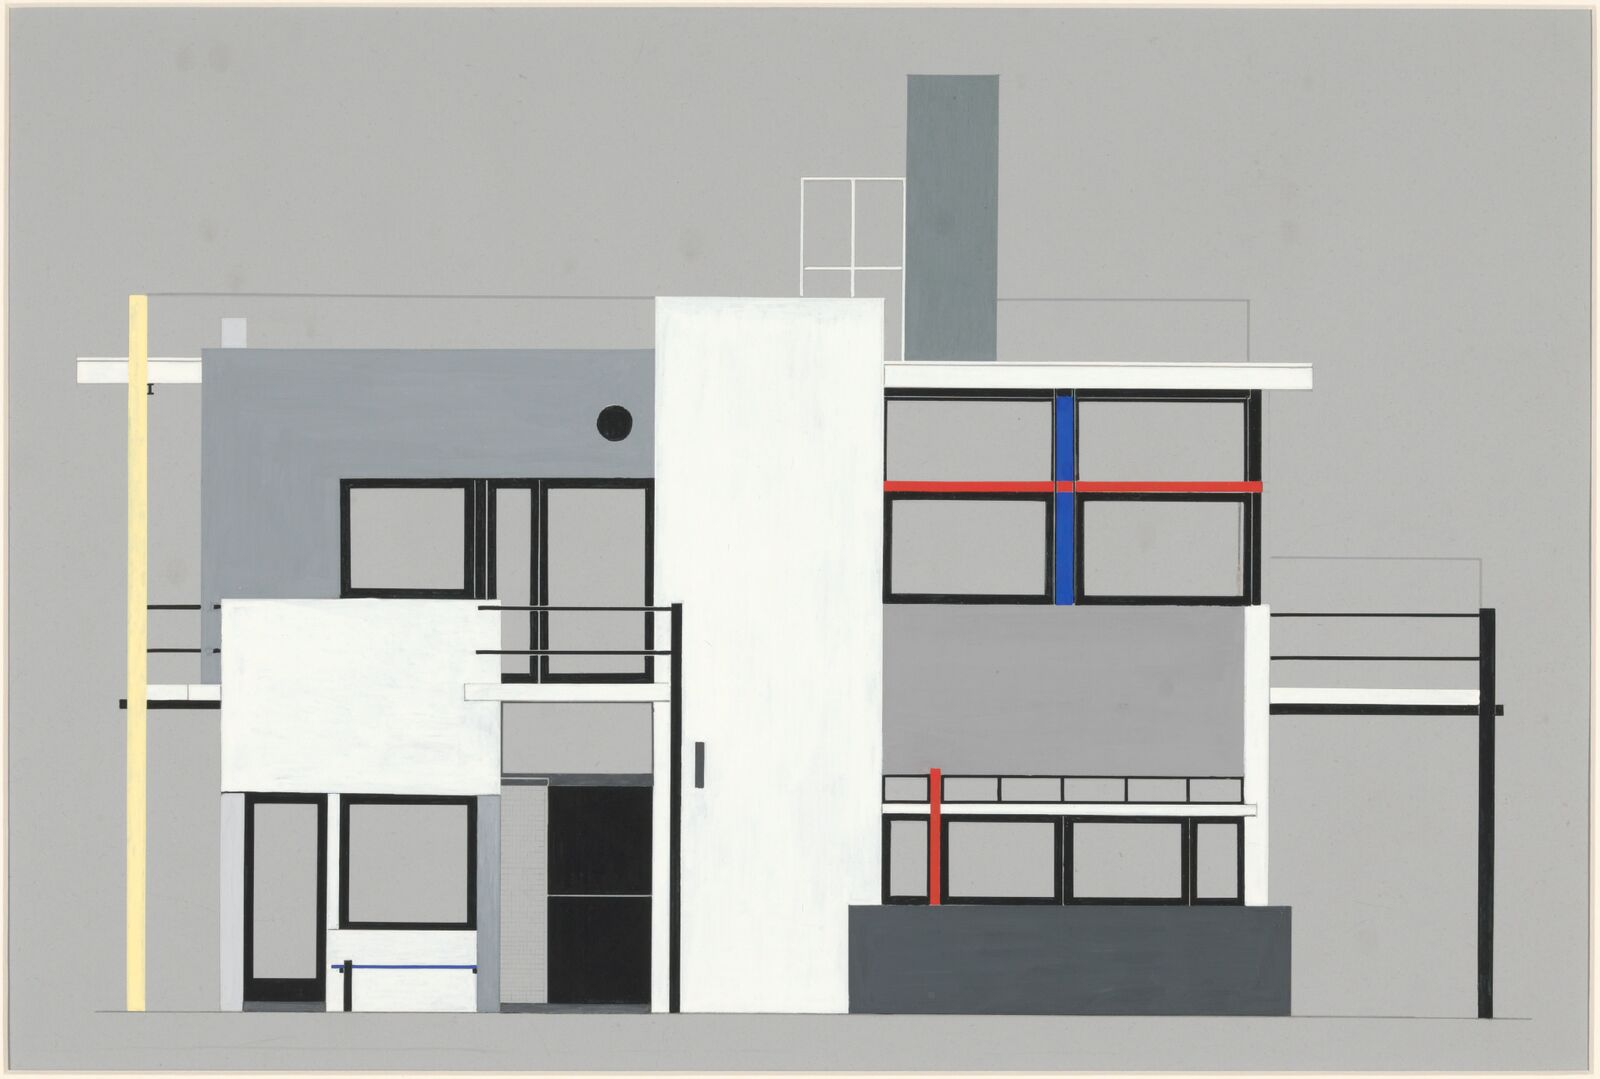 100 Years Of De Stijl Mondriaan To Dutch Design Interior Interview Questions And Answers